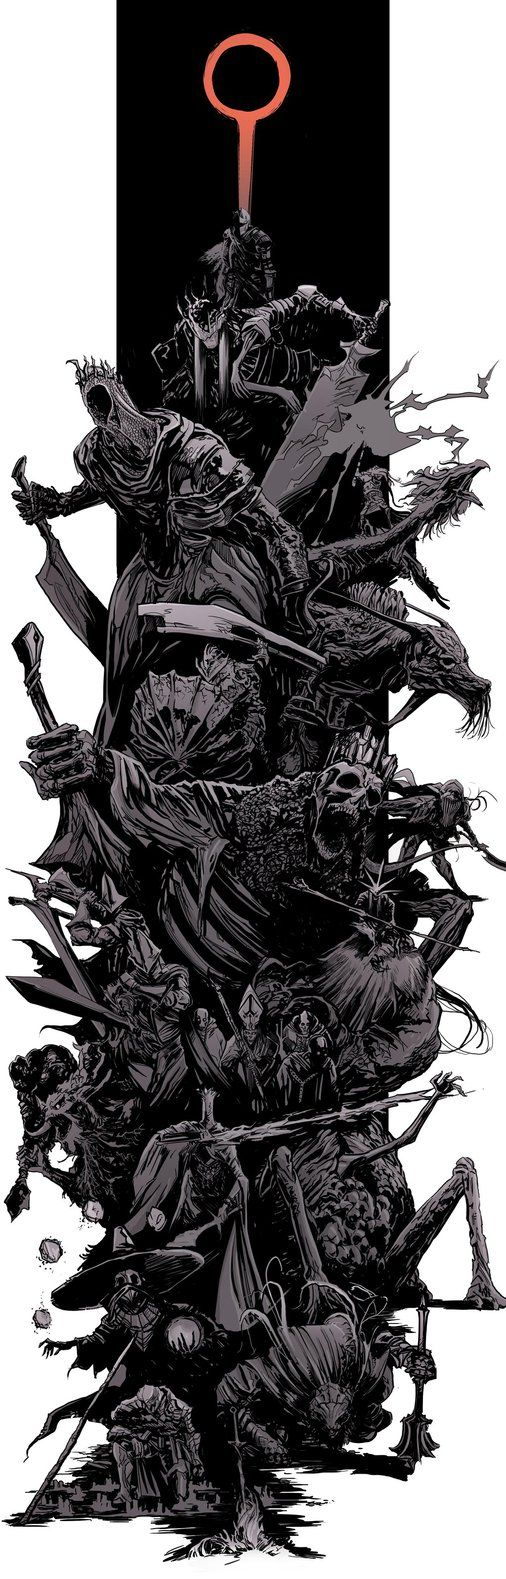 DarkSouls3 - bosses splash by uger.deviantart.com on @DeviantArt